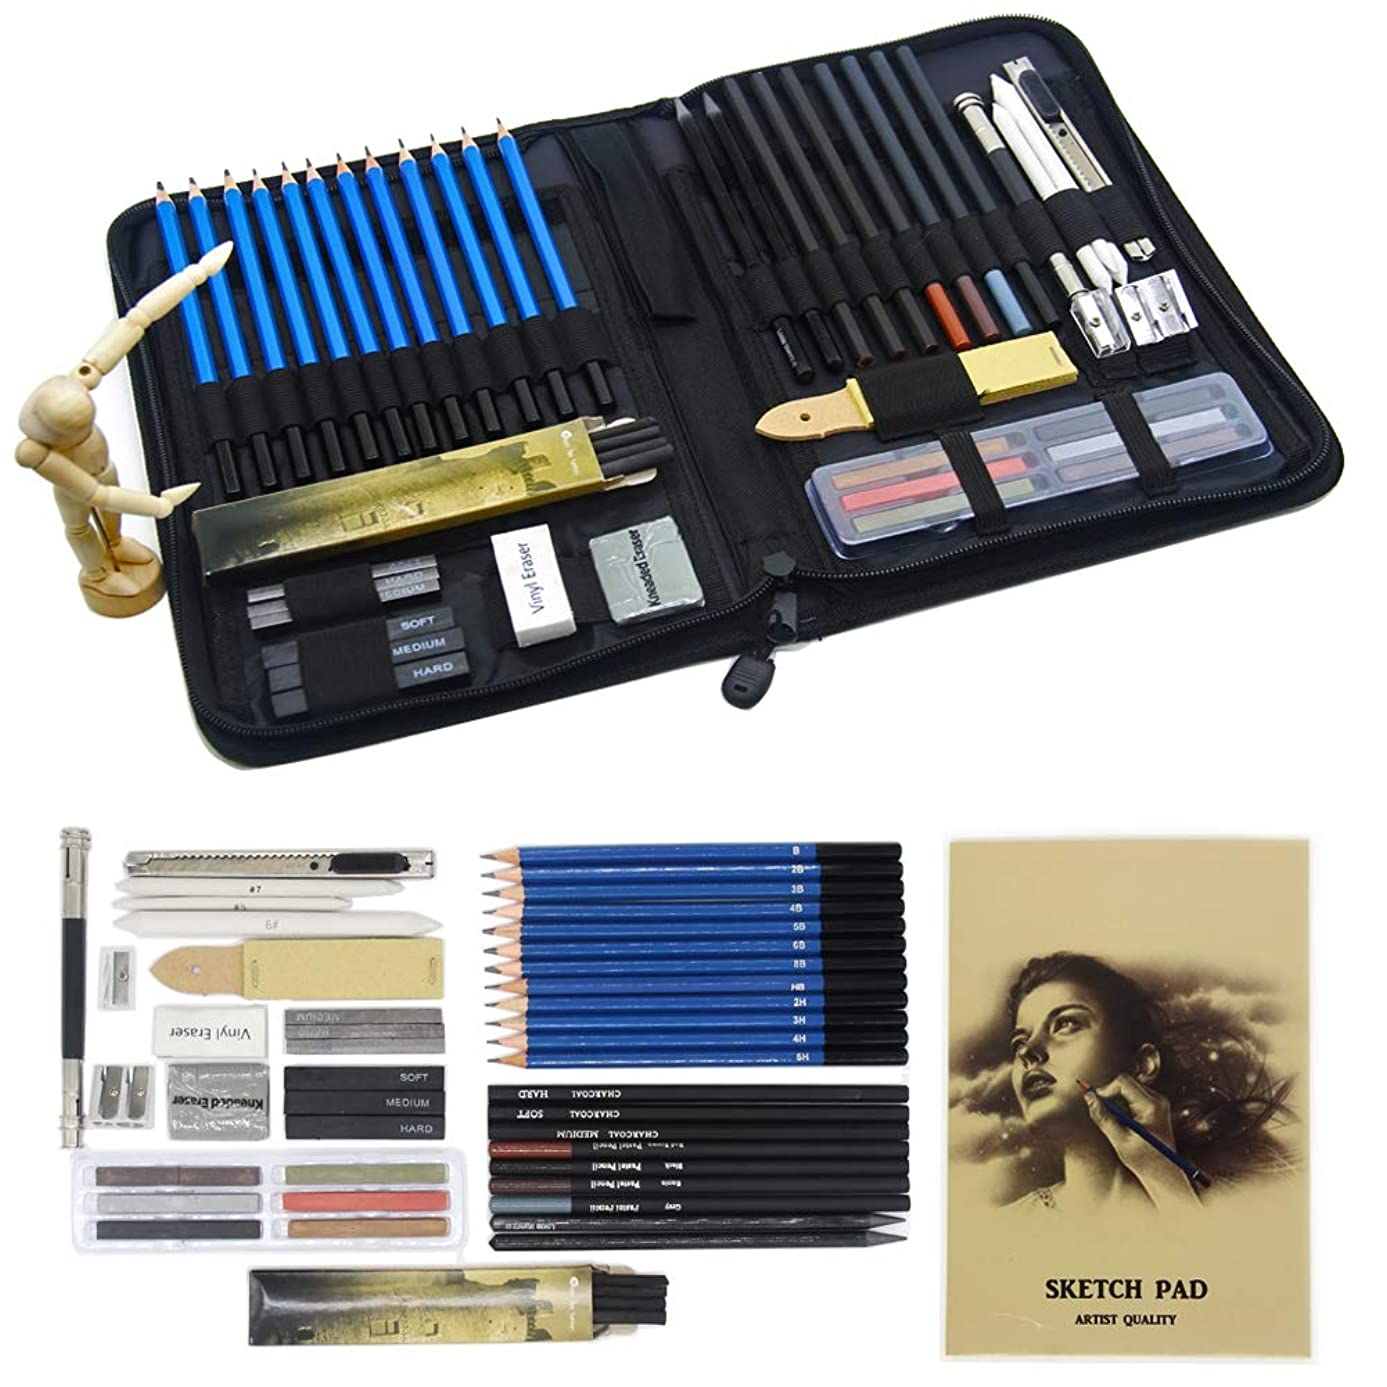 Parallel Halo Professional Art Kit Drawing and Sketching Set with Carrying Case; Sketching and Charcoal Pencils; Art Kit for Kids, Teens and Adults (49sets)